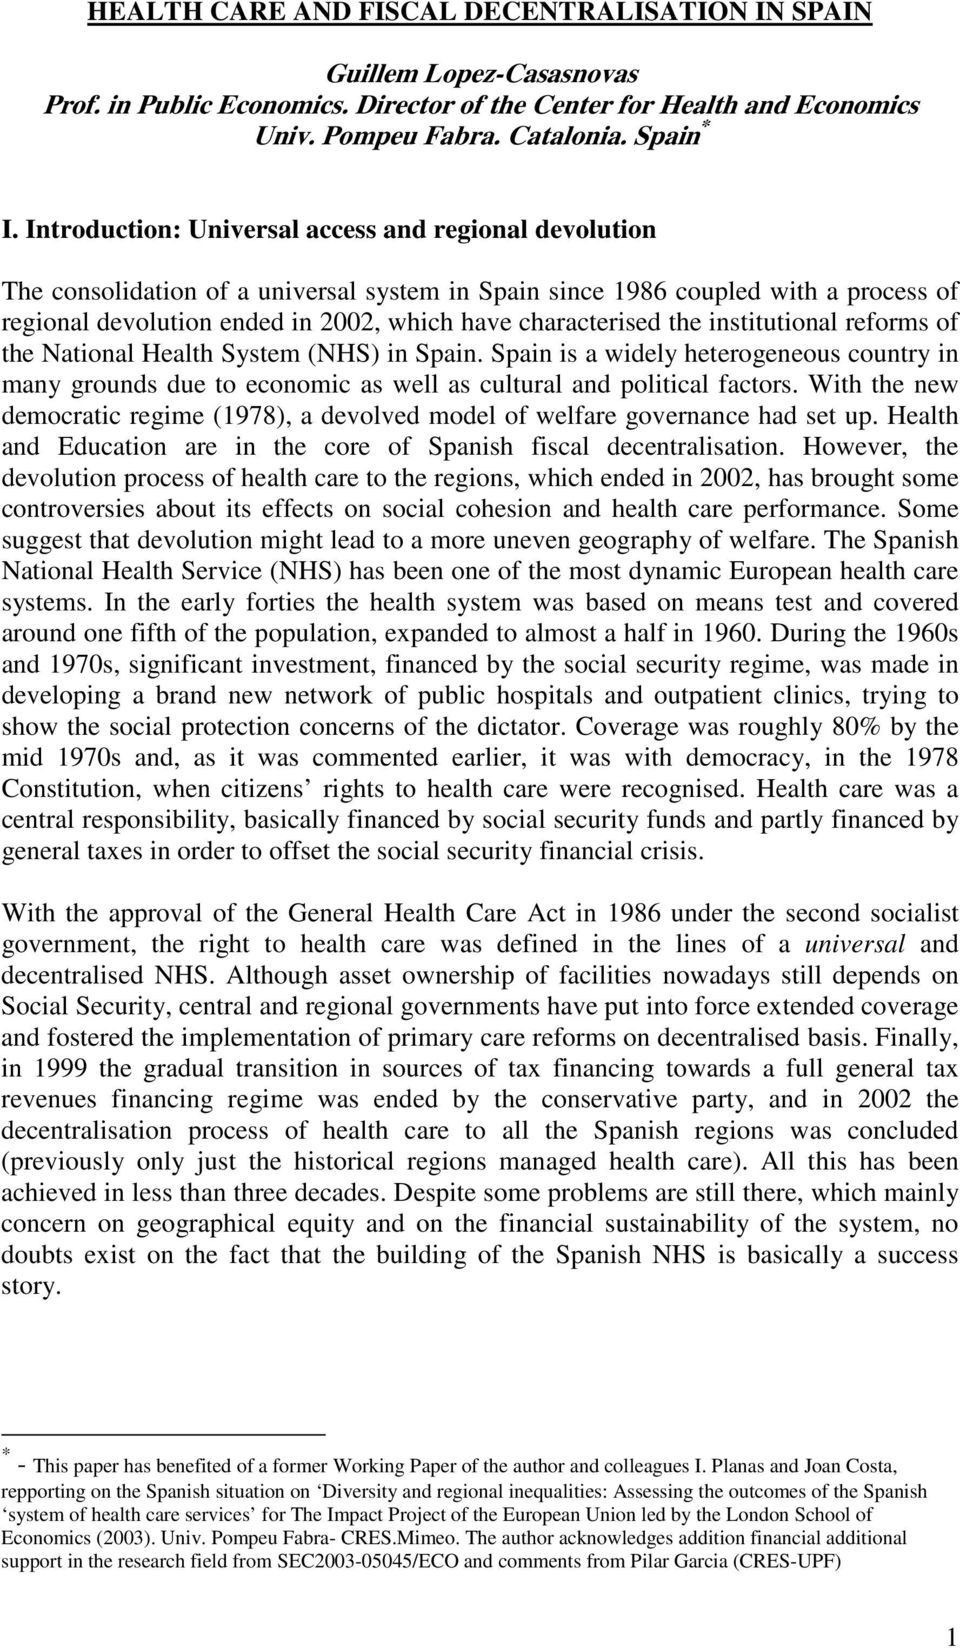 characterised the institutional reforms of the National Health System (NHS) in Spain. Spain is a widely heterogeneous country in many grounds due to economic as well as cultural and political factors.